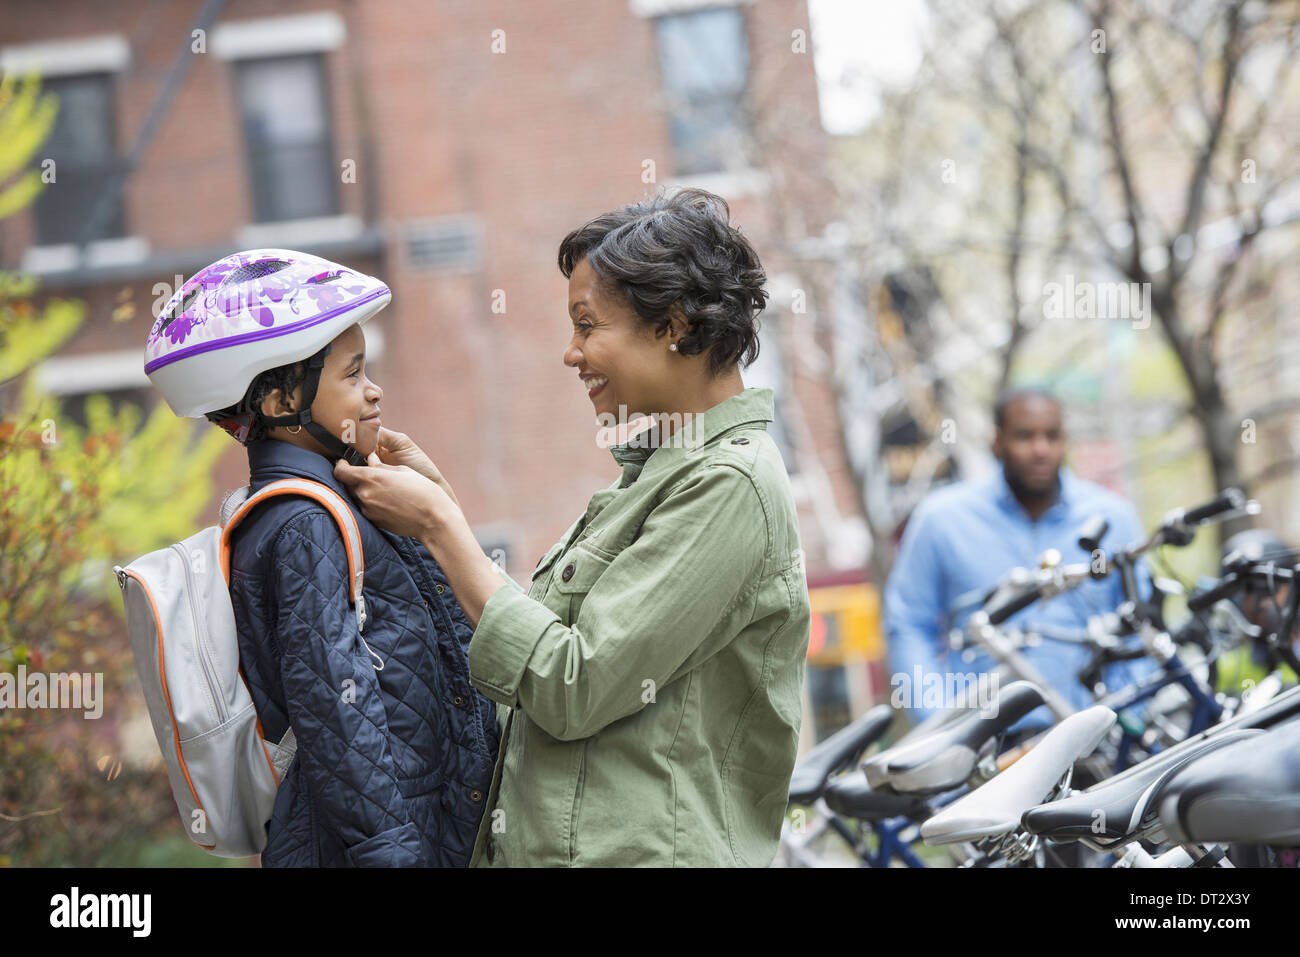 A boy in a cycle helmet being fastened by his mother beside a bicycle rack - Stock Image